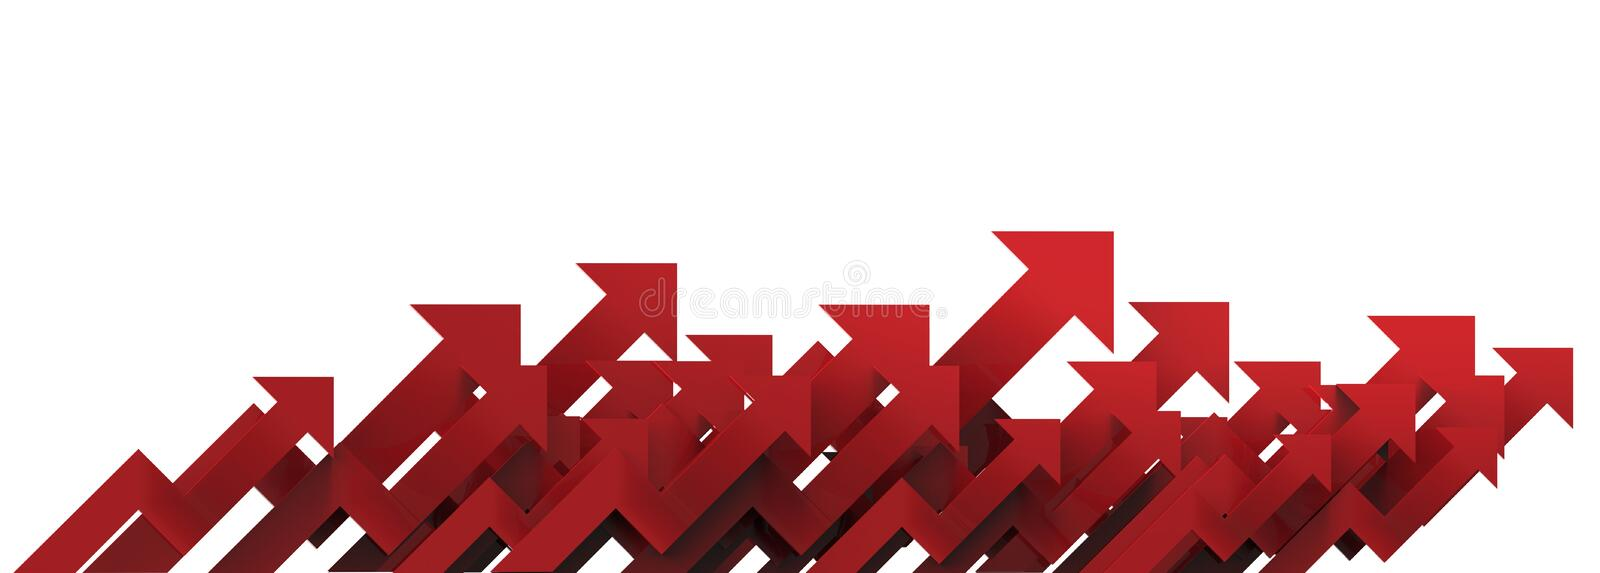 Red arrow. Growing business background concept.3D rendering.  stock photography